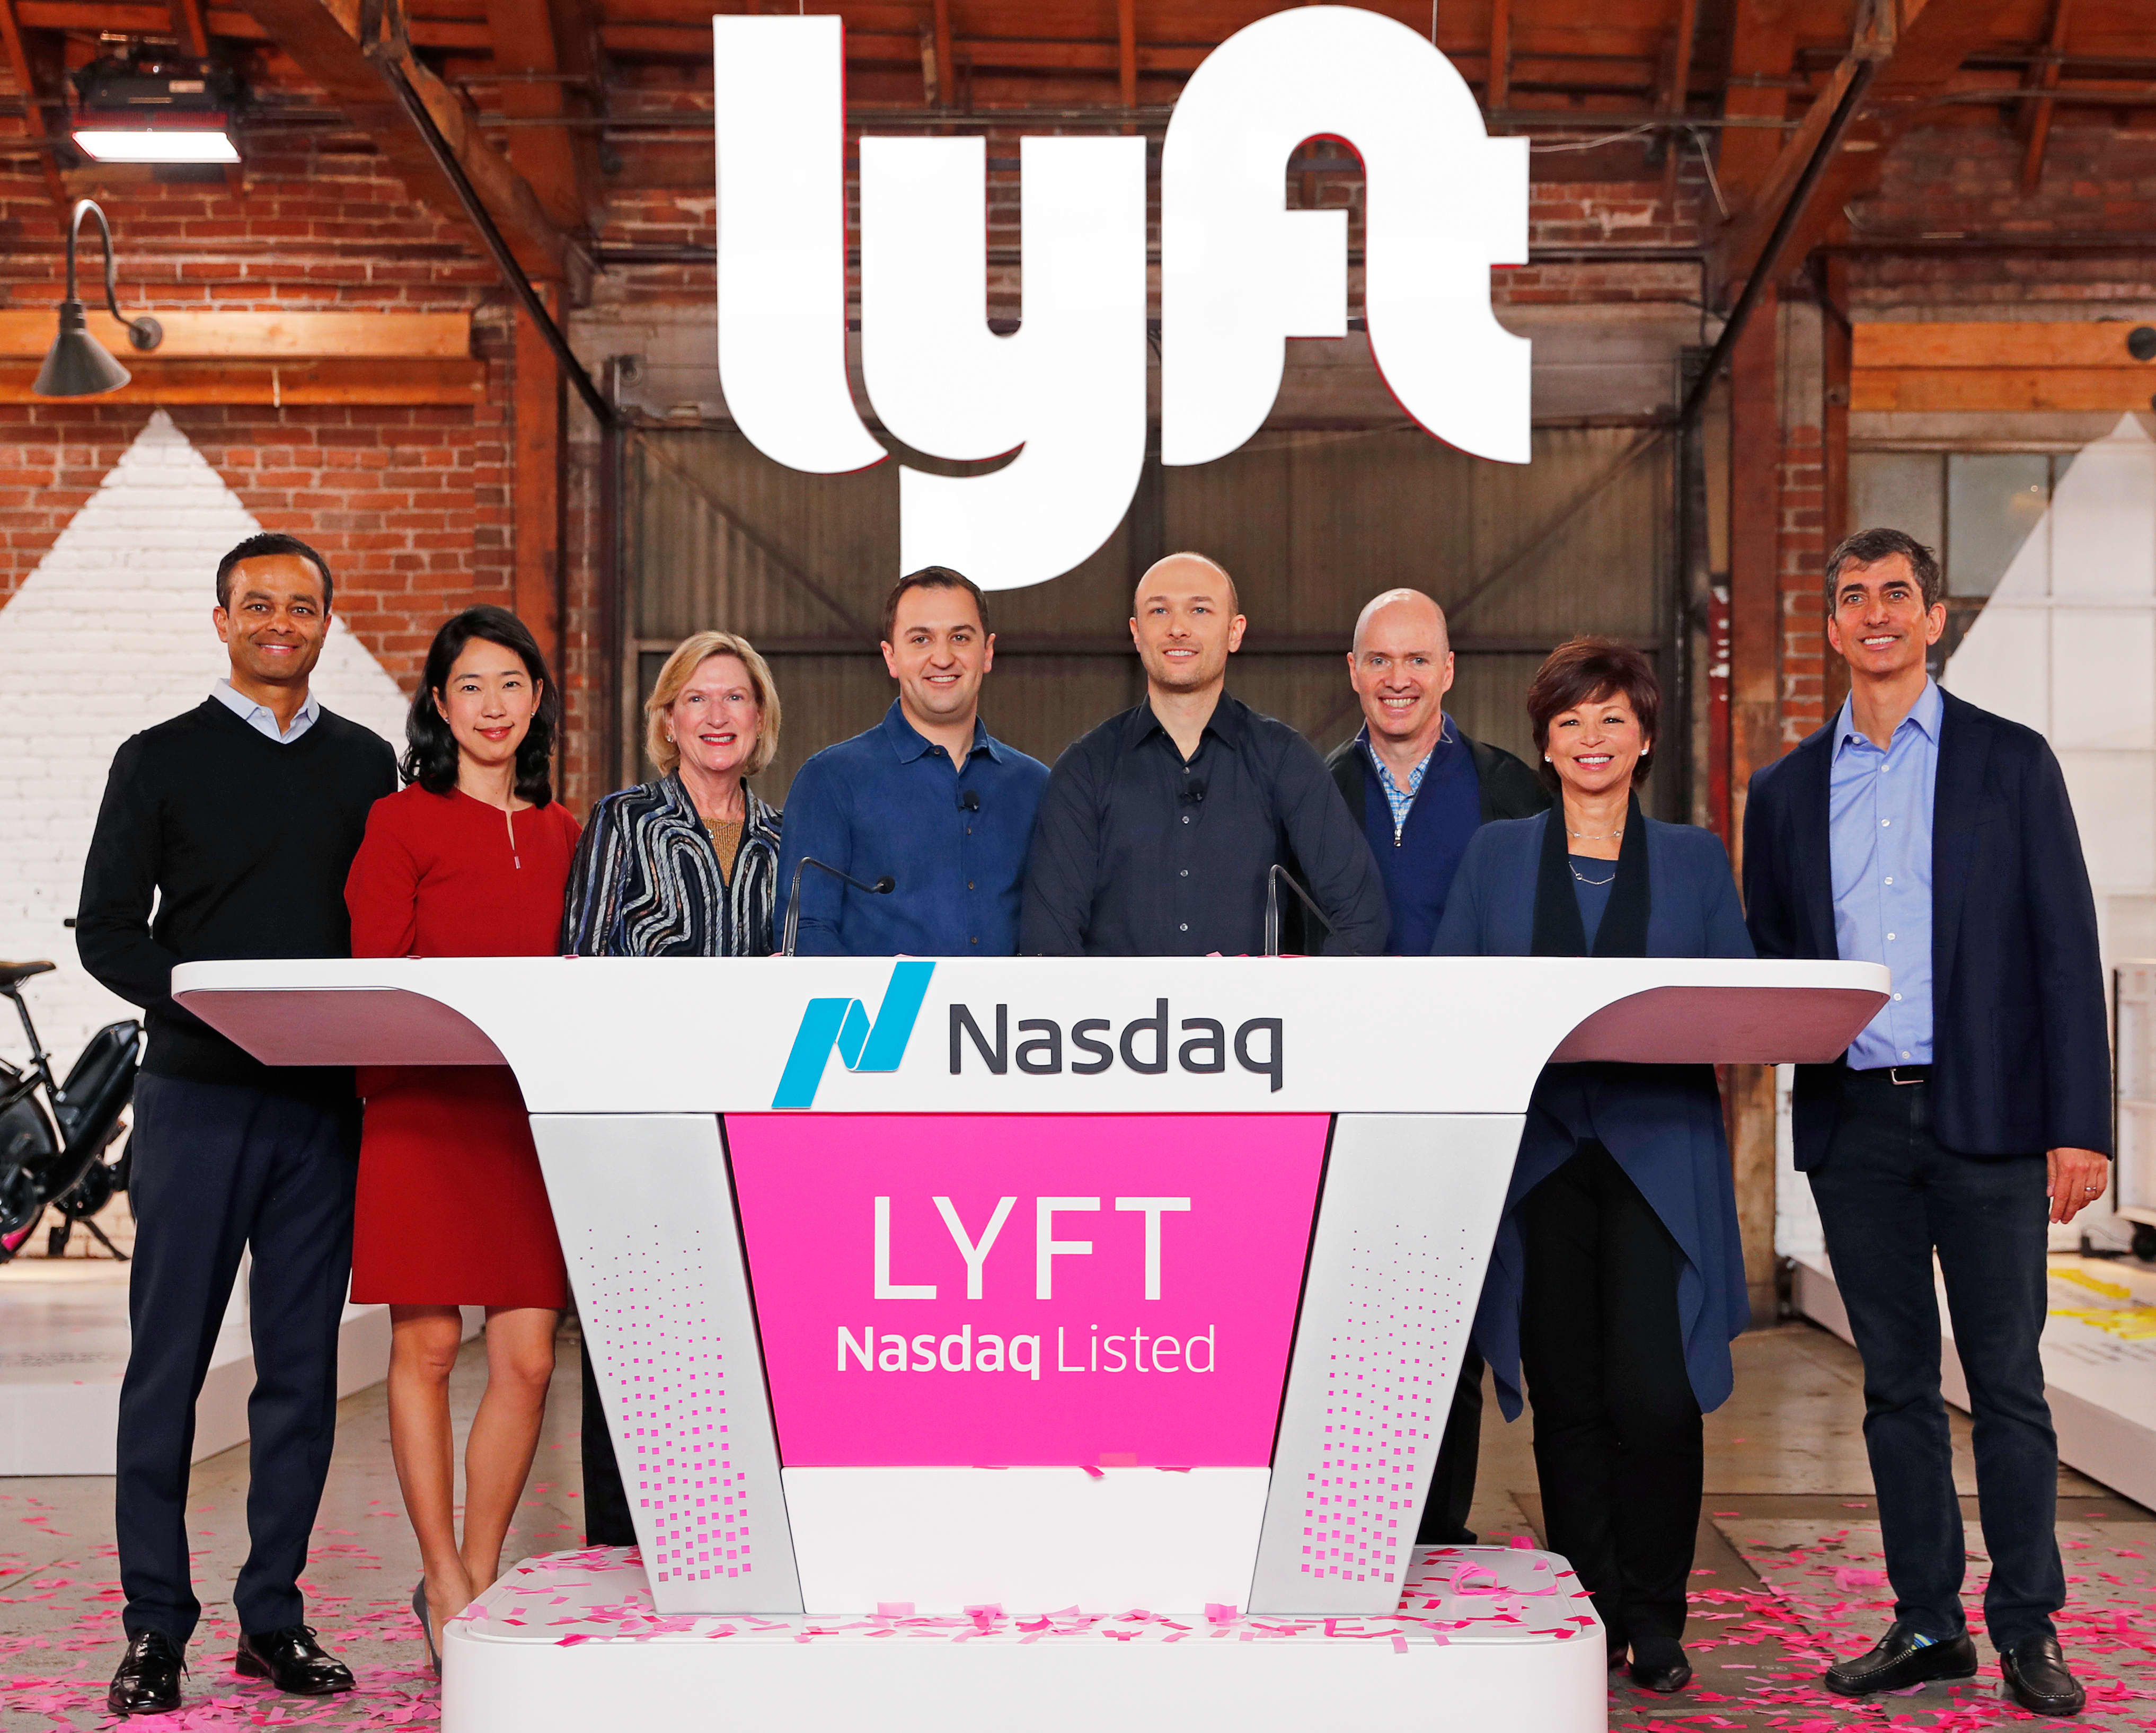 Analysts are encouraged Lyft insiders aren't dumping stock at their first chance since the IPO